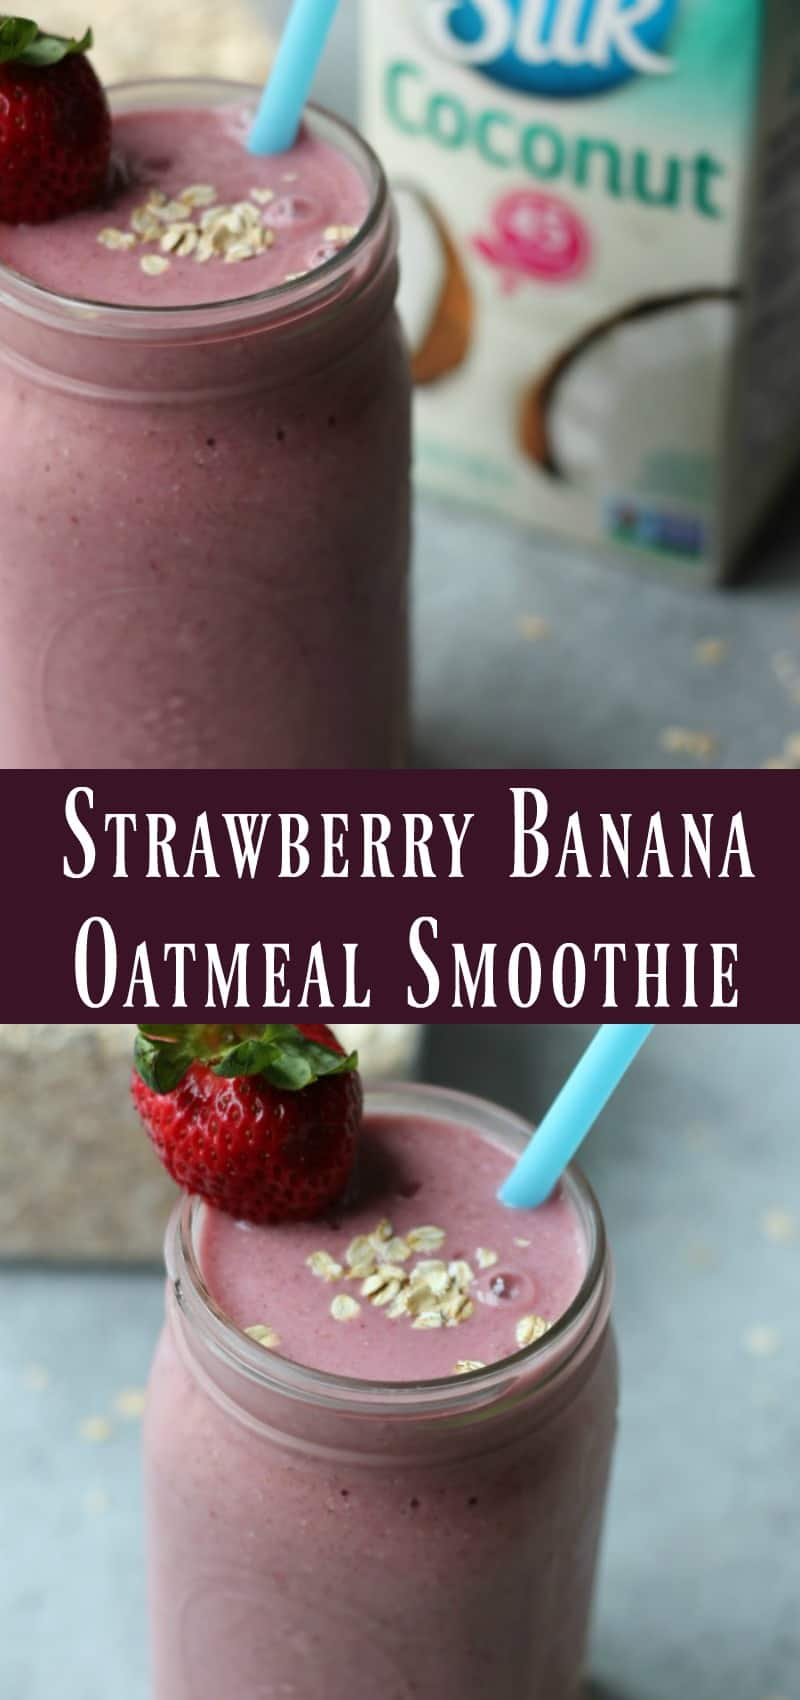 Strawberry Banana Oatmeal Smoothie @silksmoothies